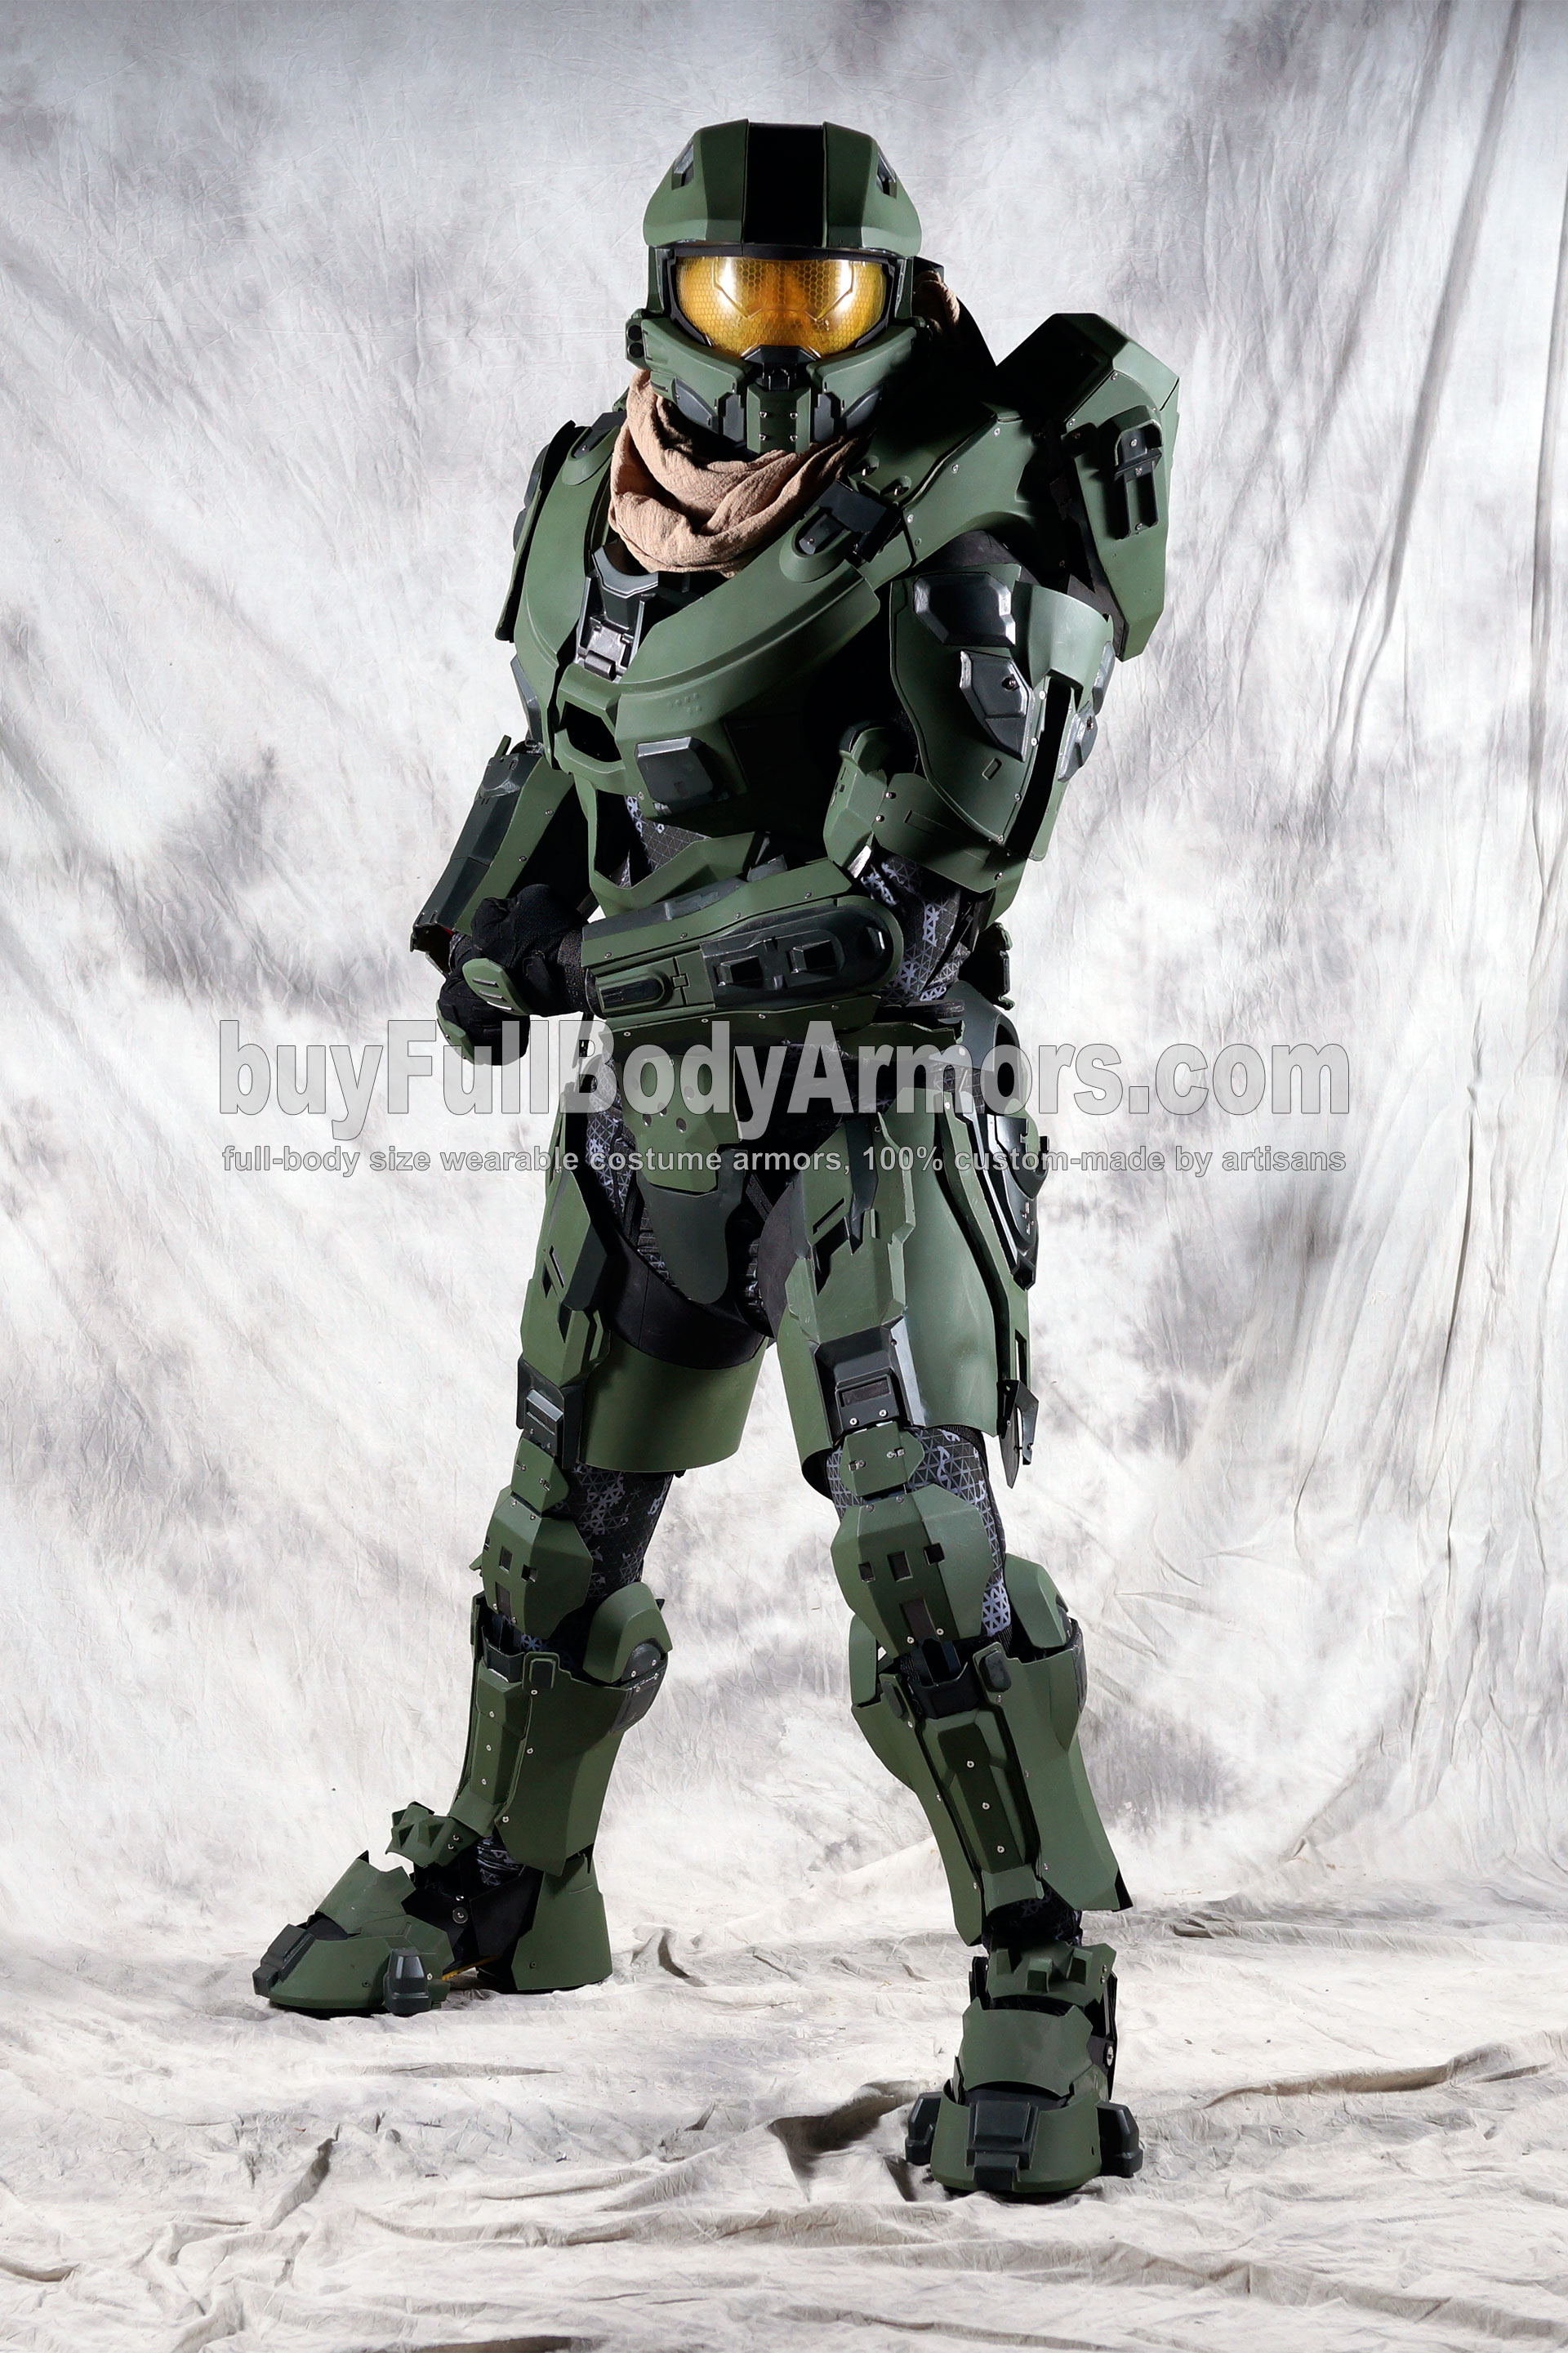 Halo 5 Master Chief Armor Suit Costume 3